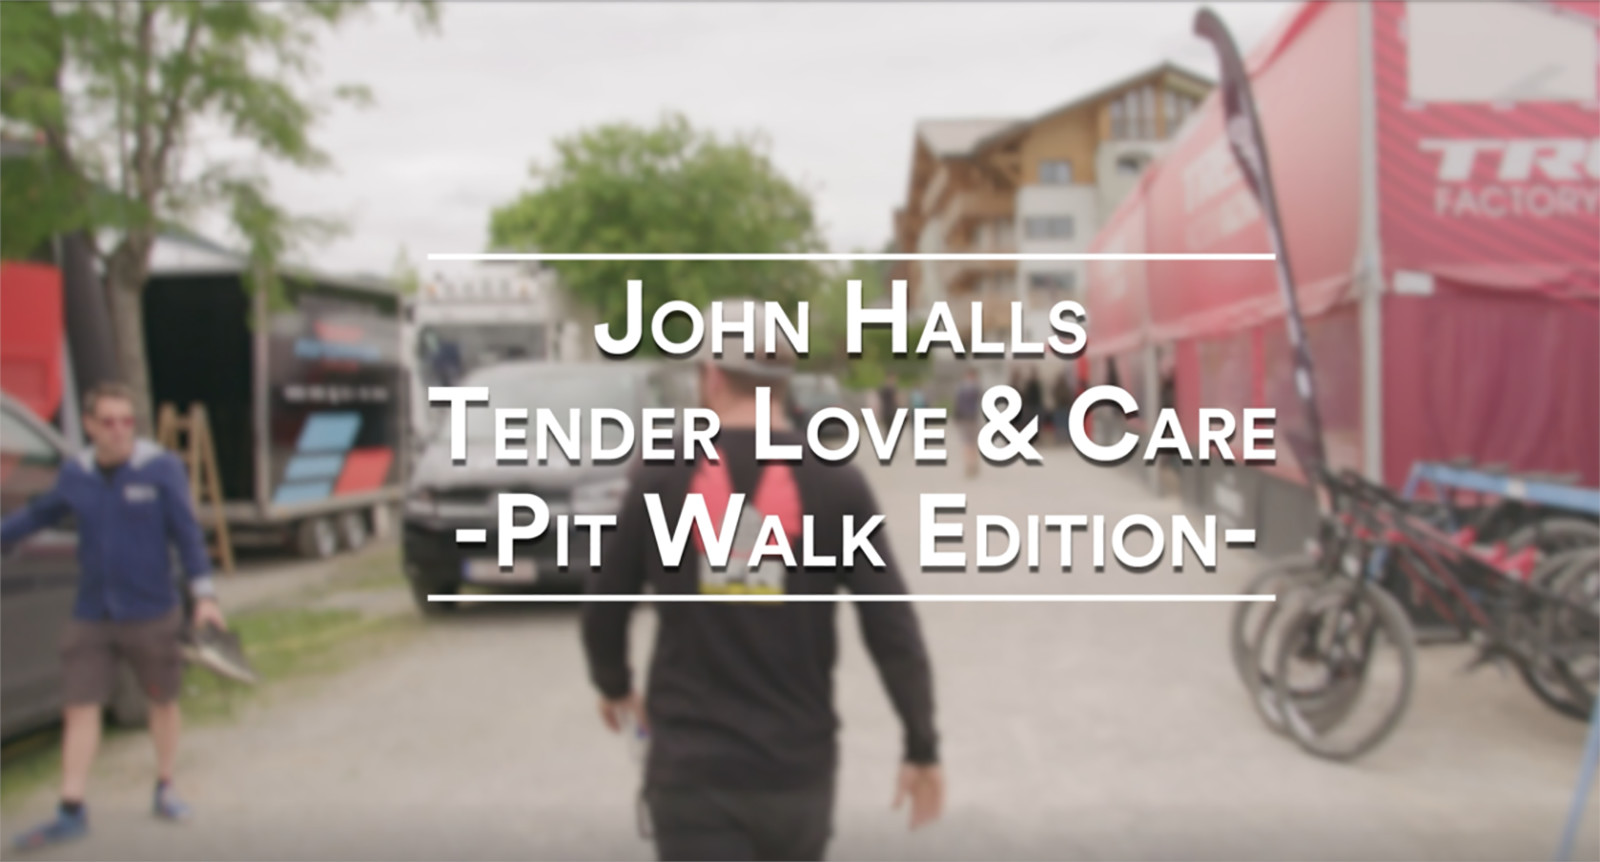 TRP presents John Hall's Outside the Toolbox Episode 2: